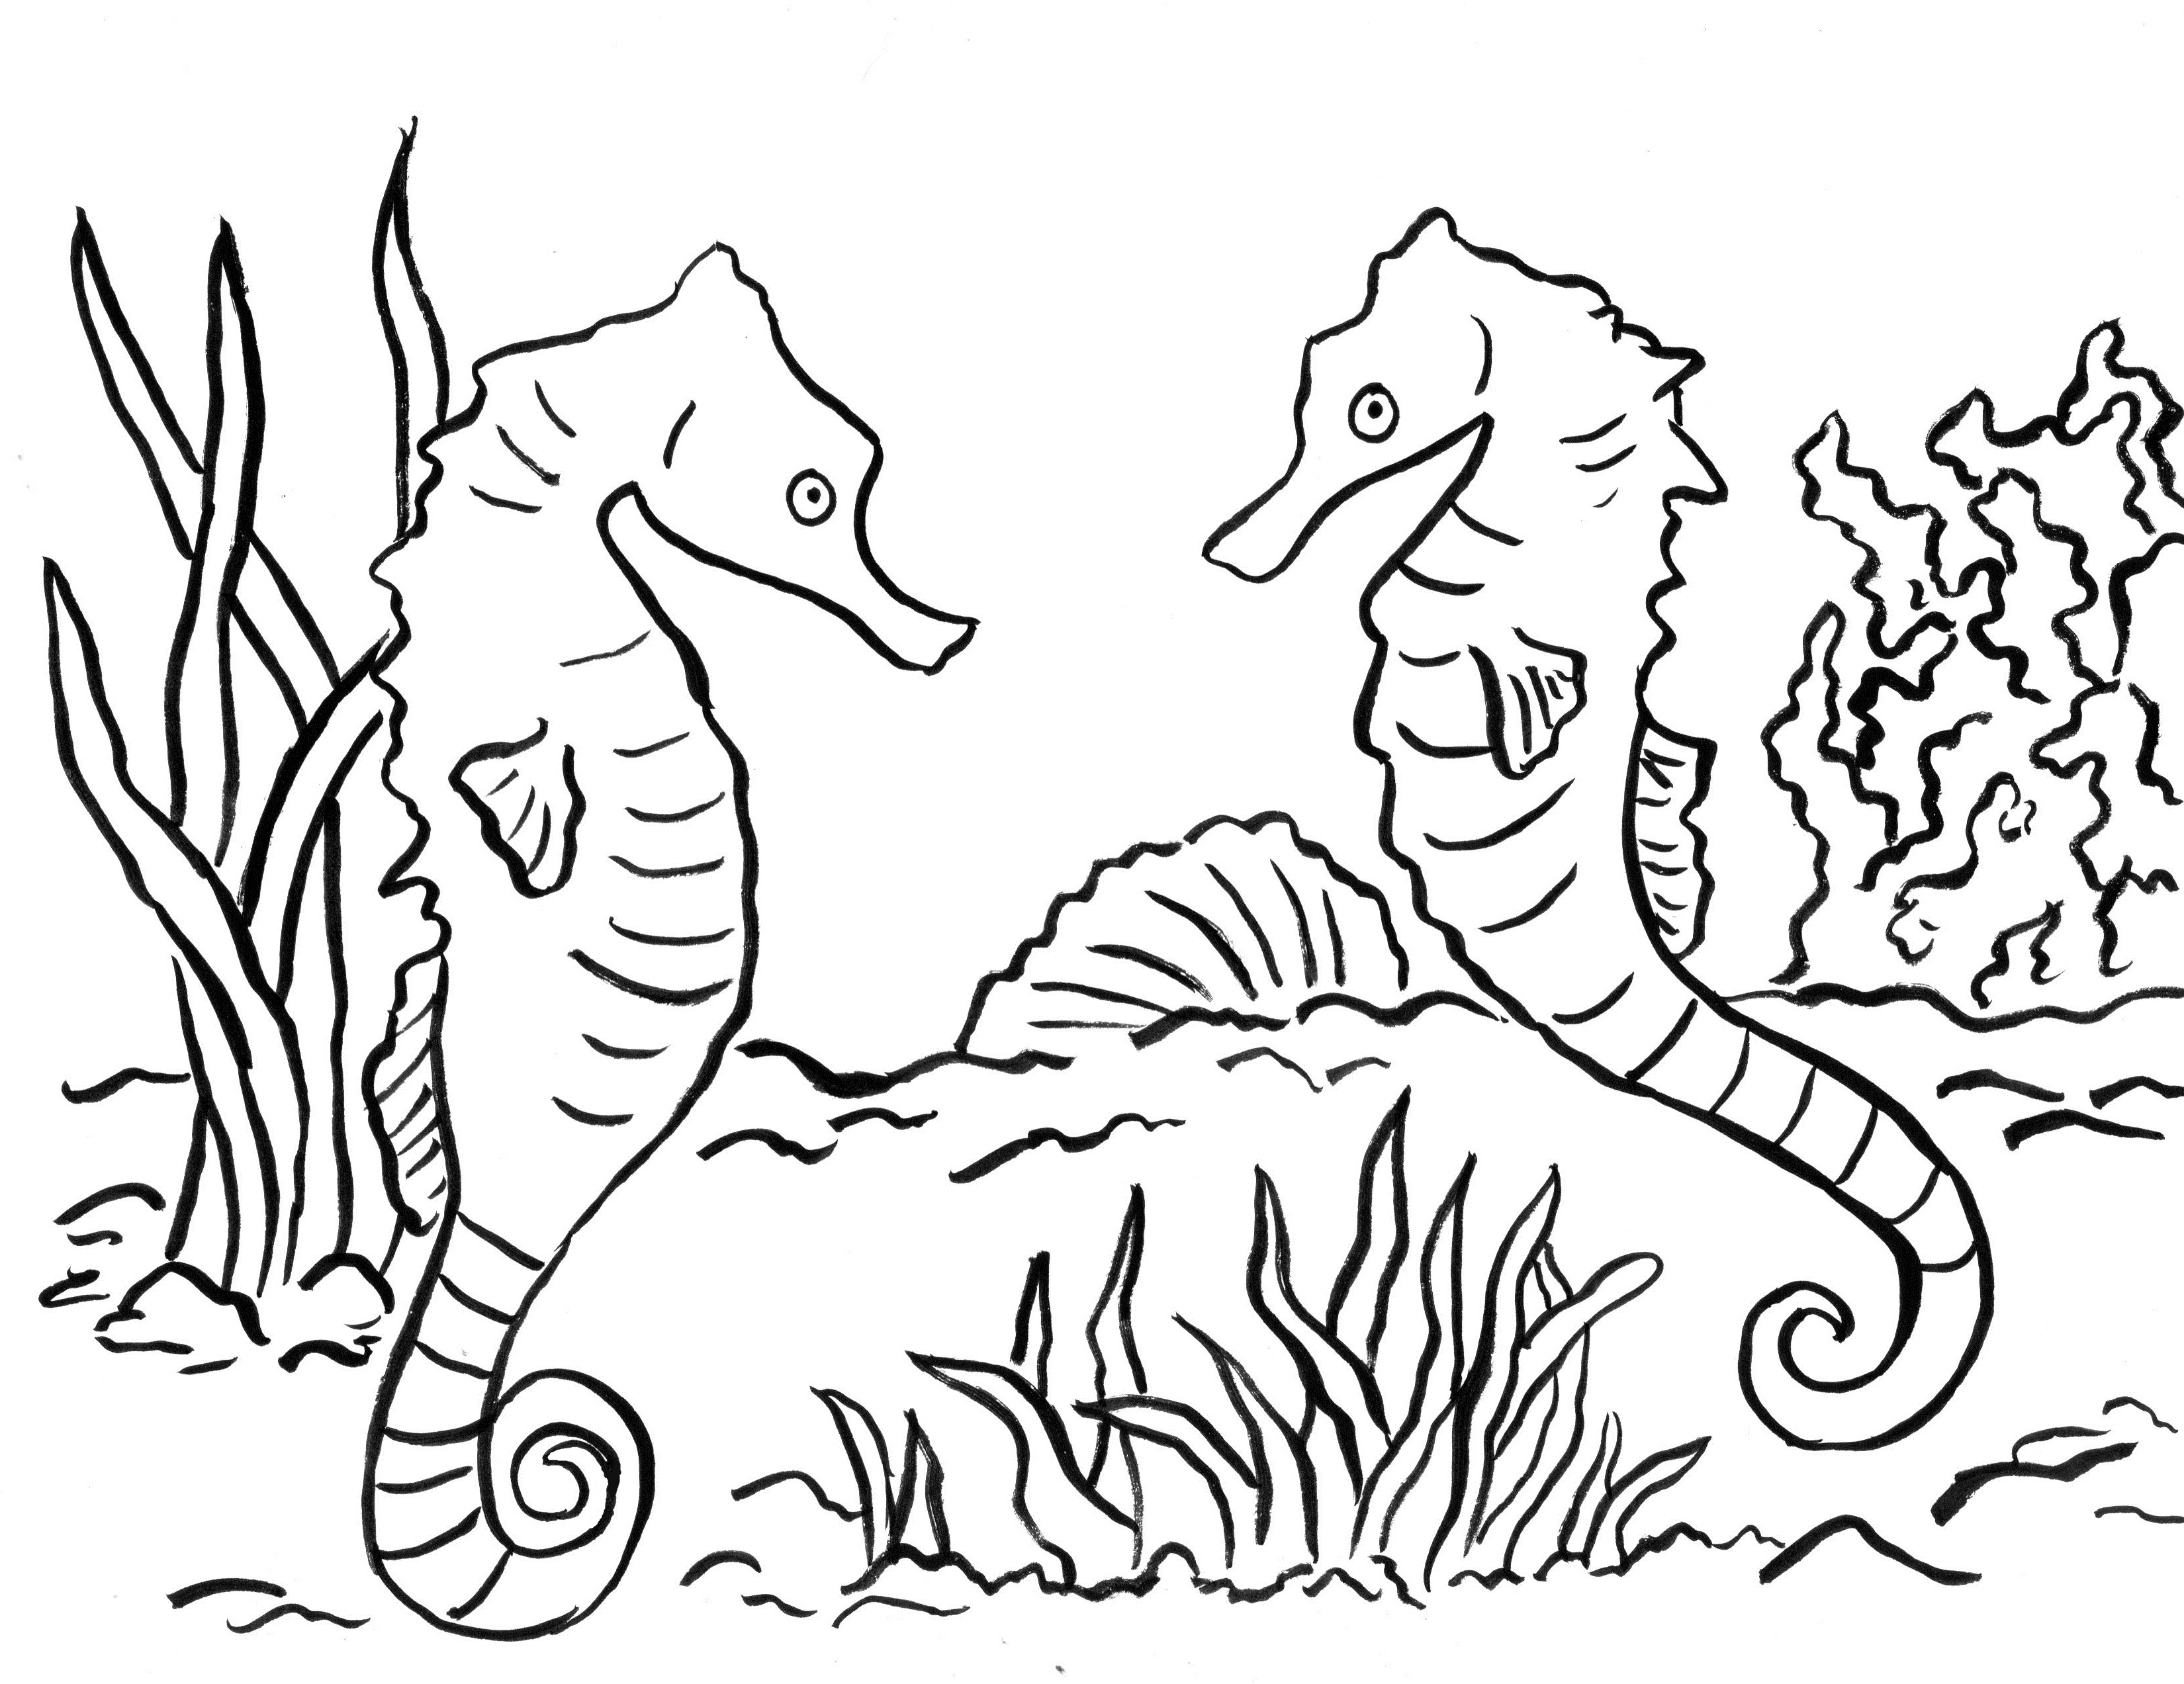 seahorse images for coloring top 10 free printable seahorse coloring pages online images coloring seahorse for